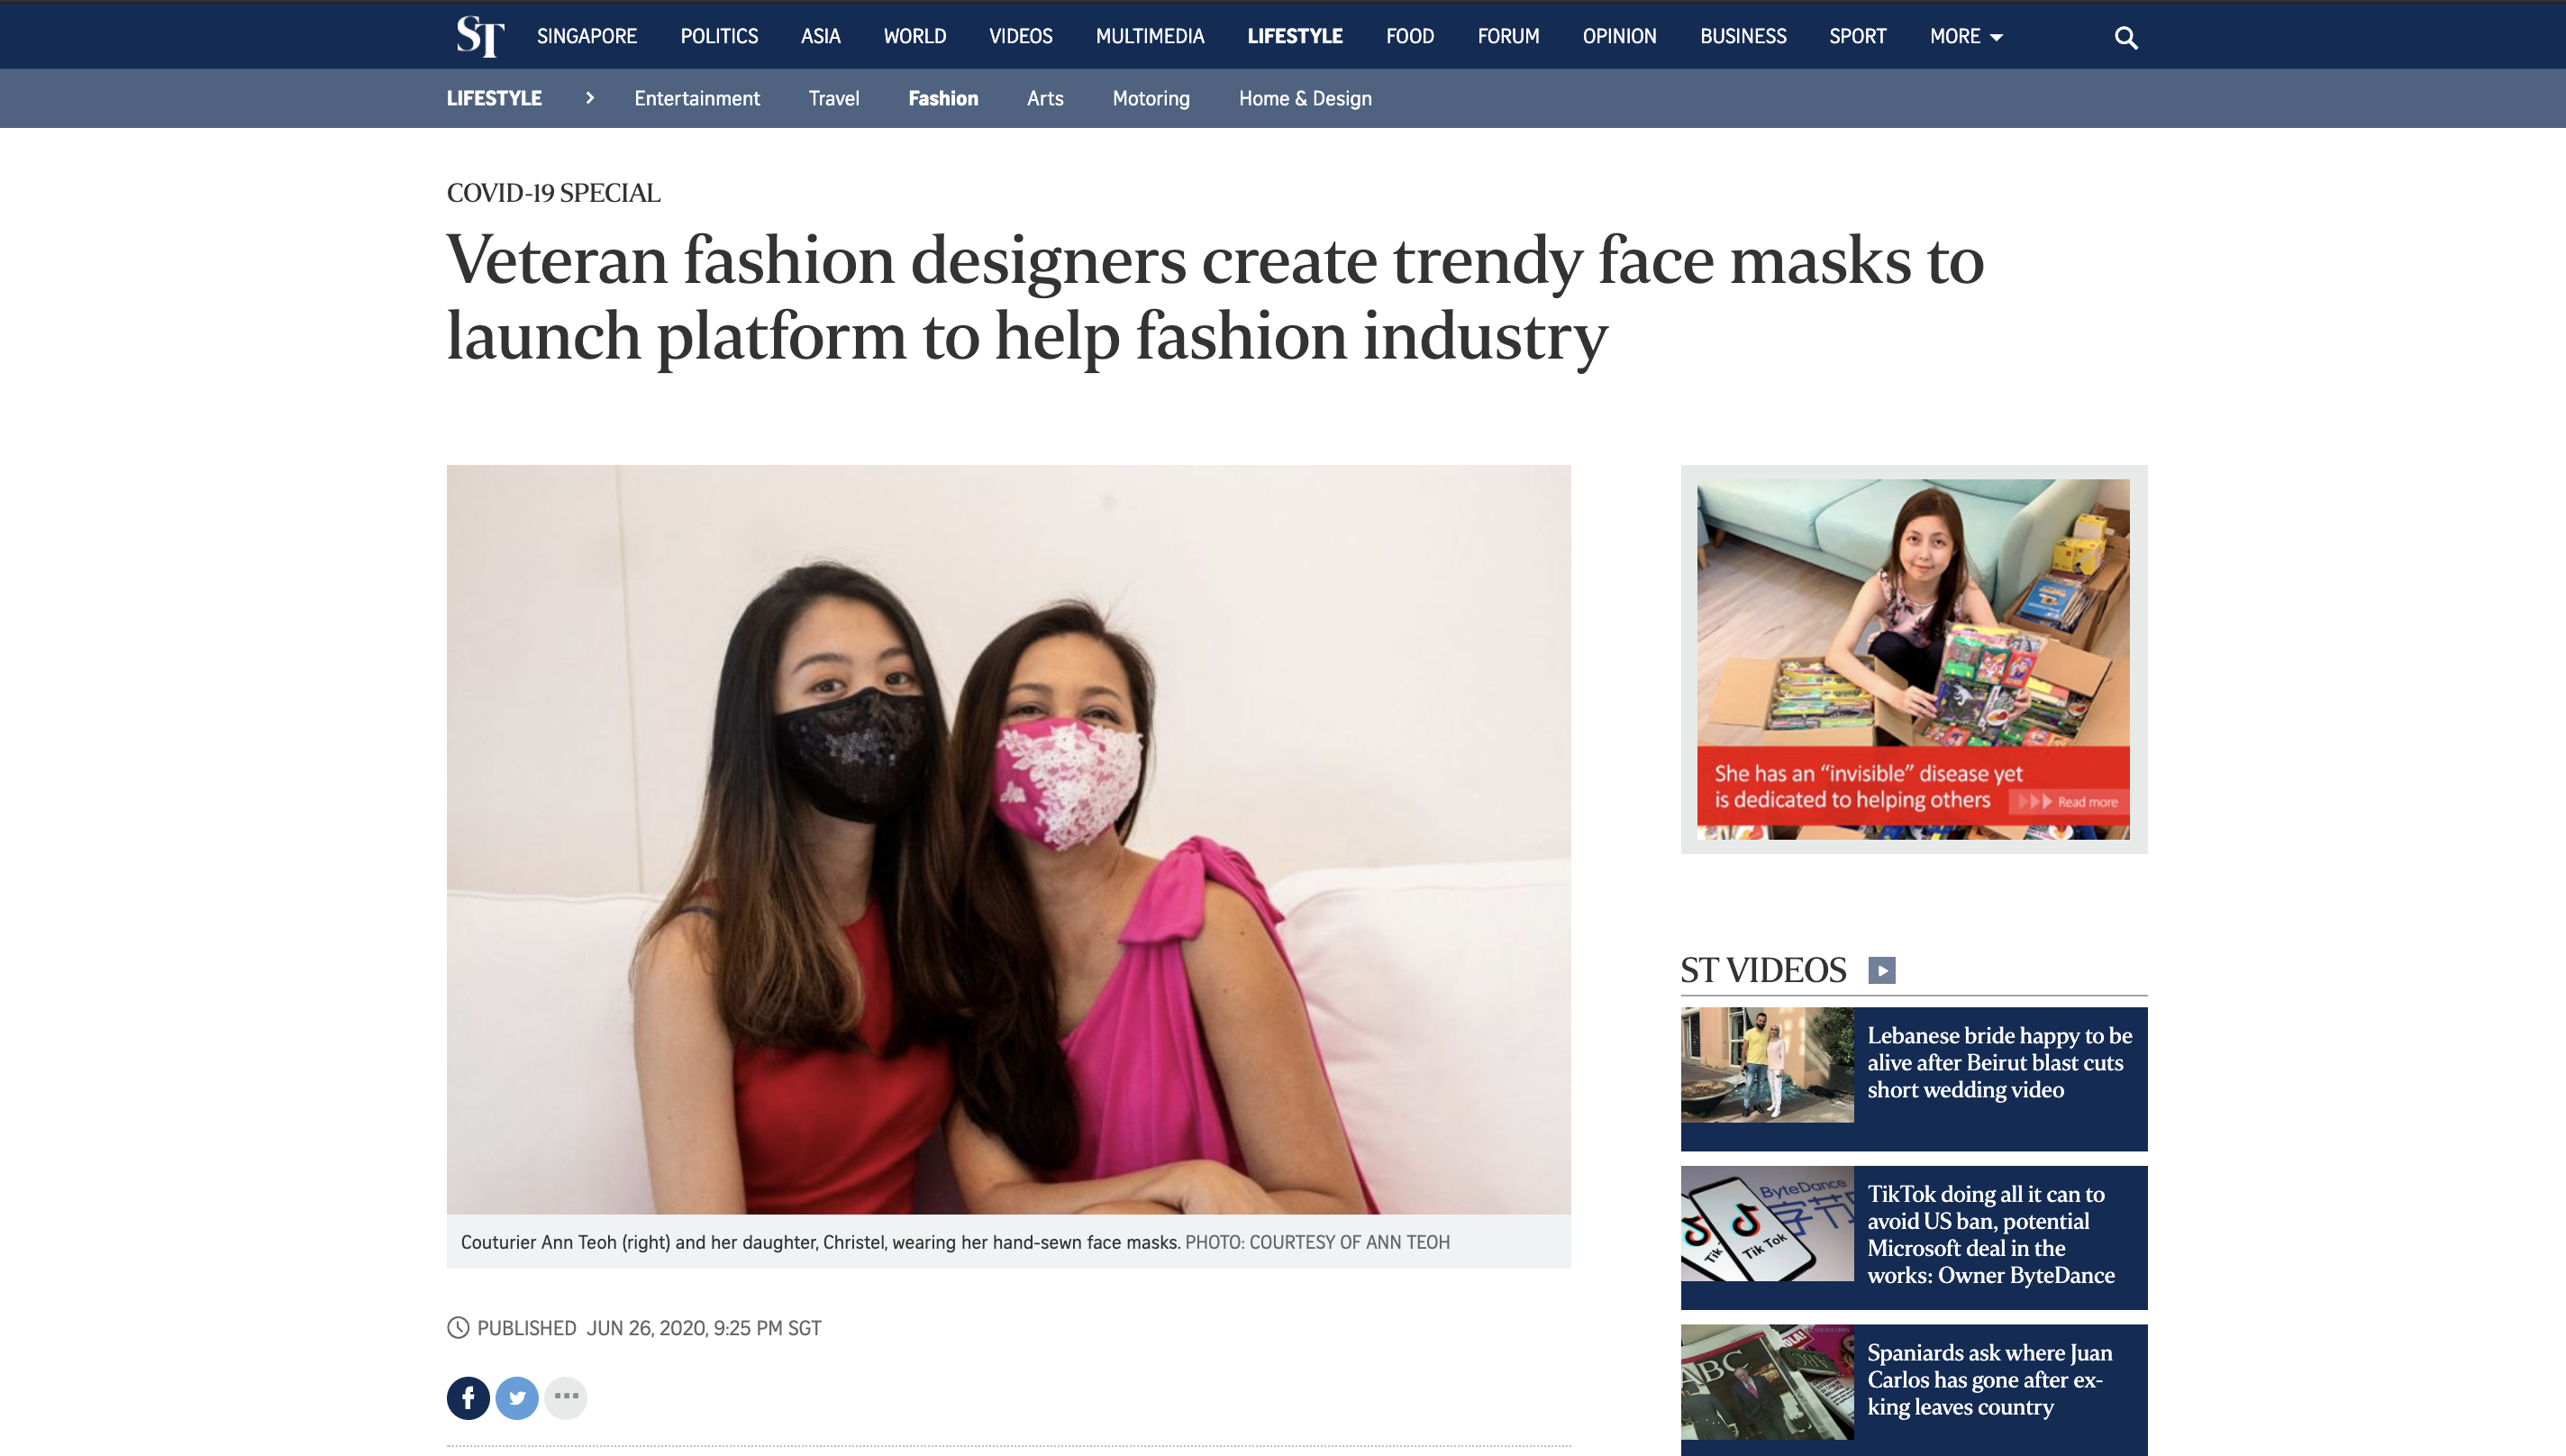 Veteran fashion designers create trendy face masks to launch platform to help fashion industry